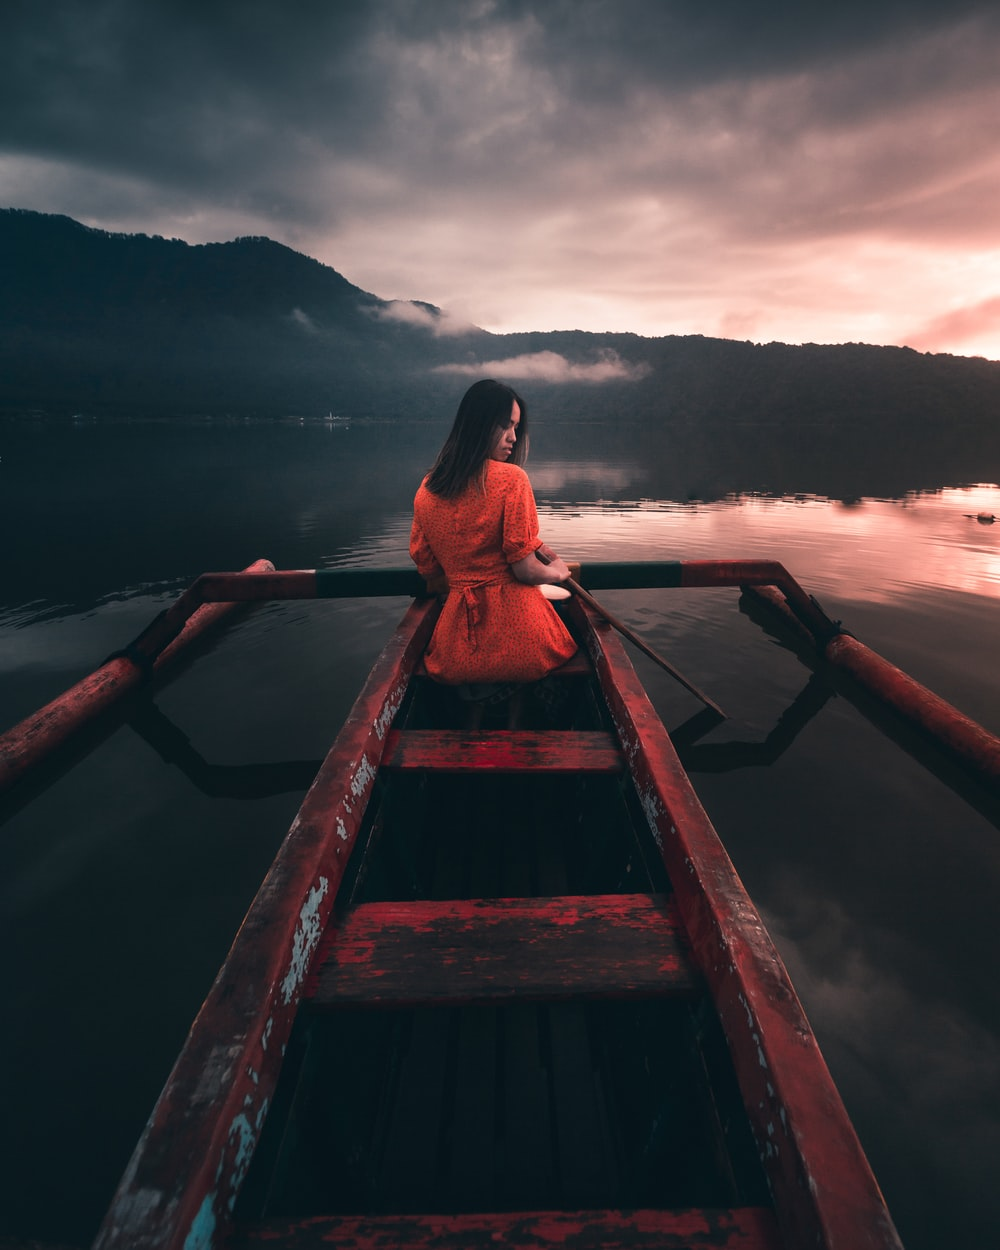 woman in red dress sitting on brown wooden dock during daytime